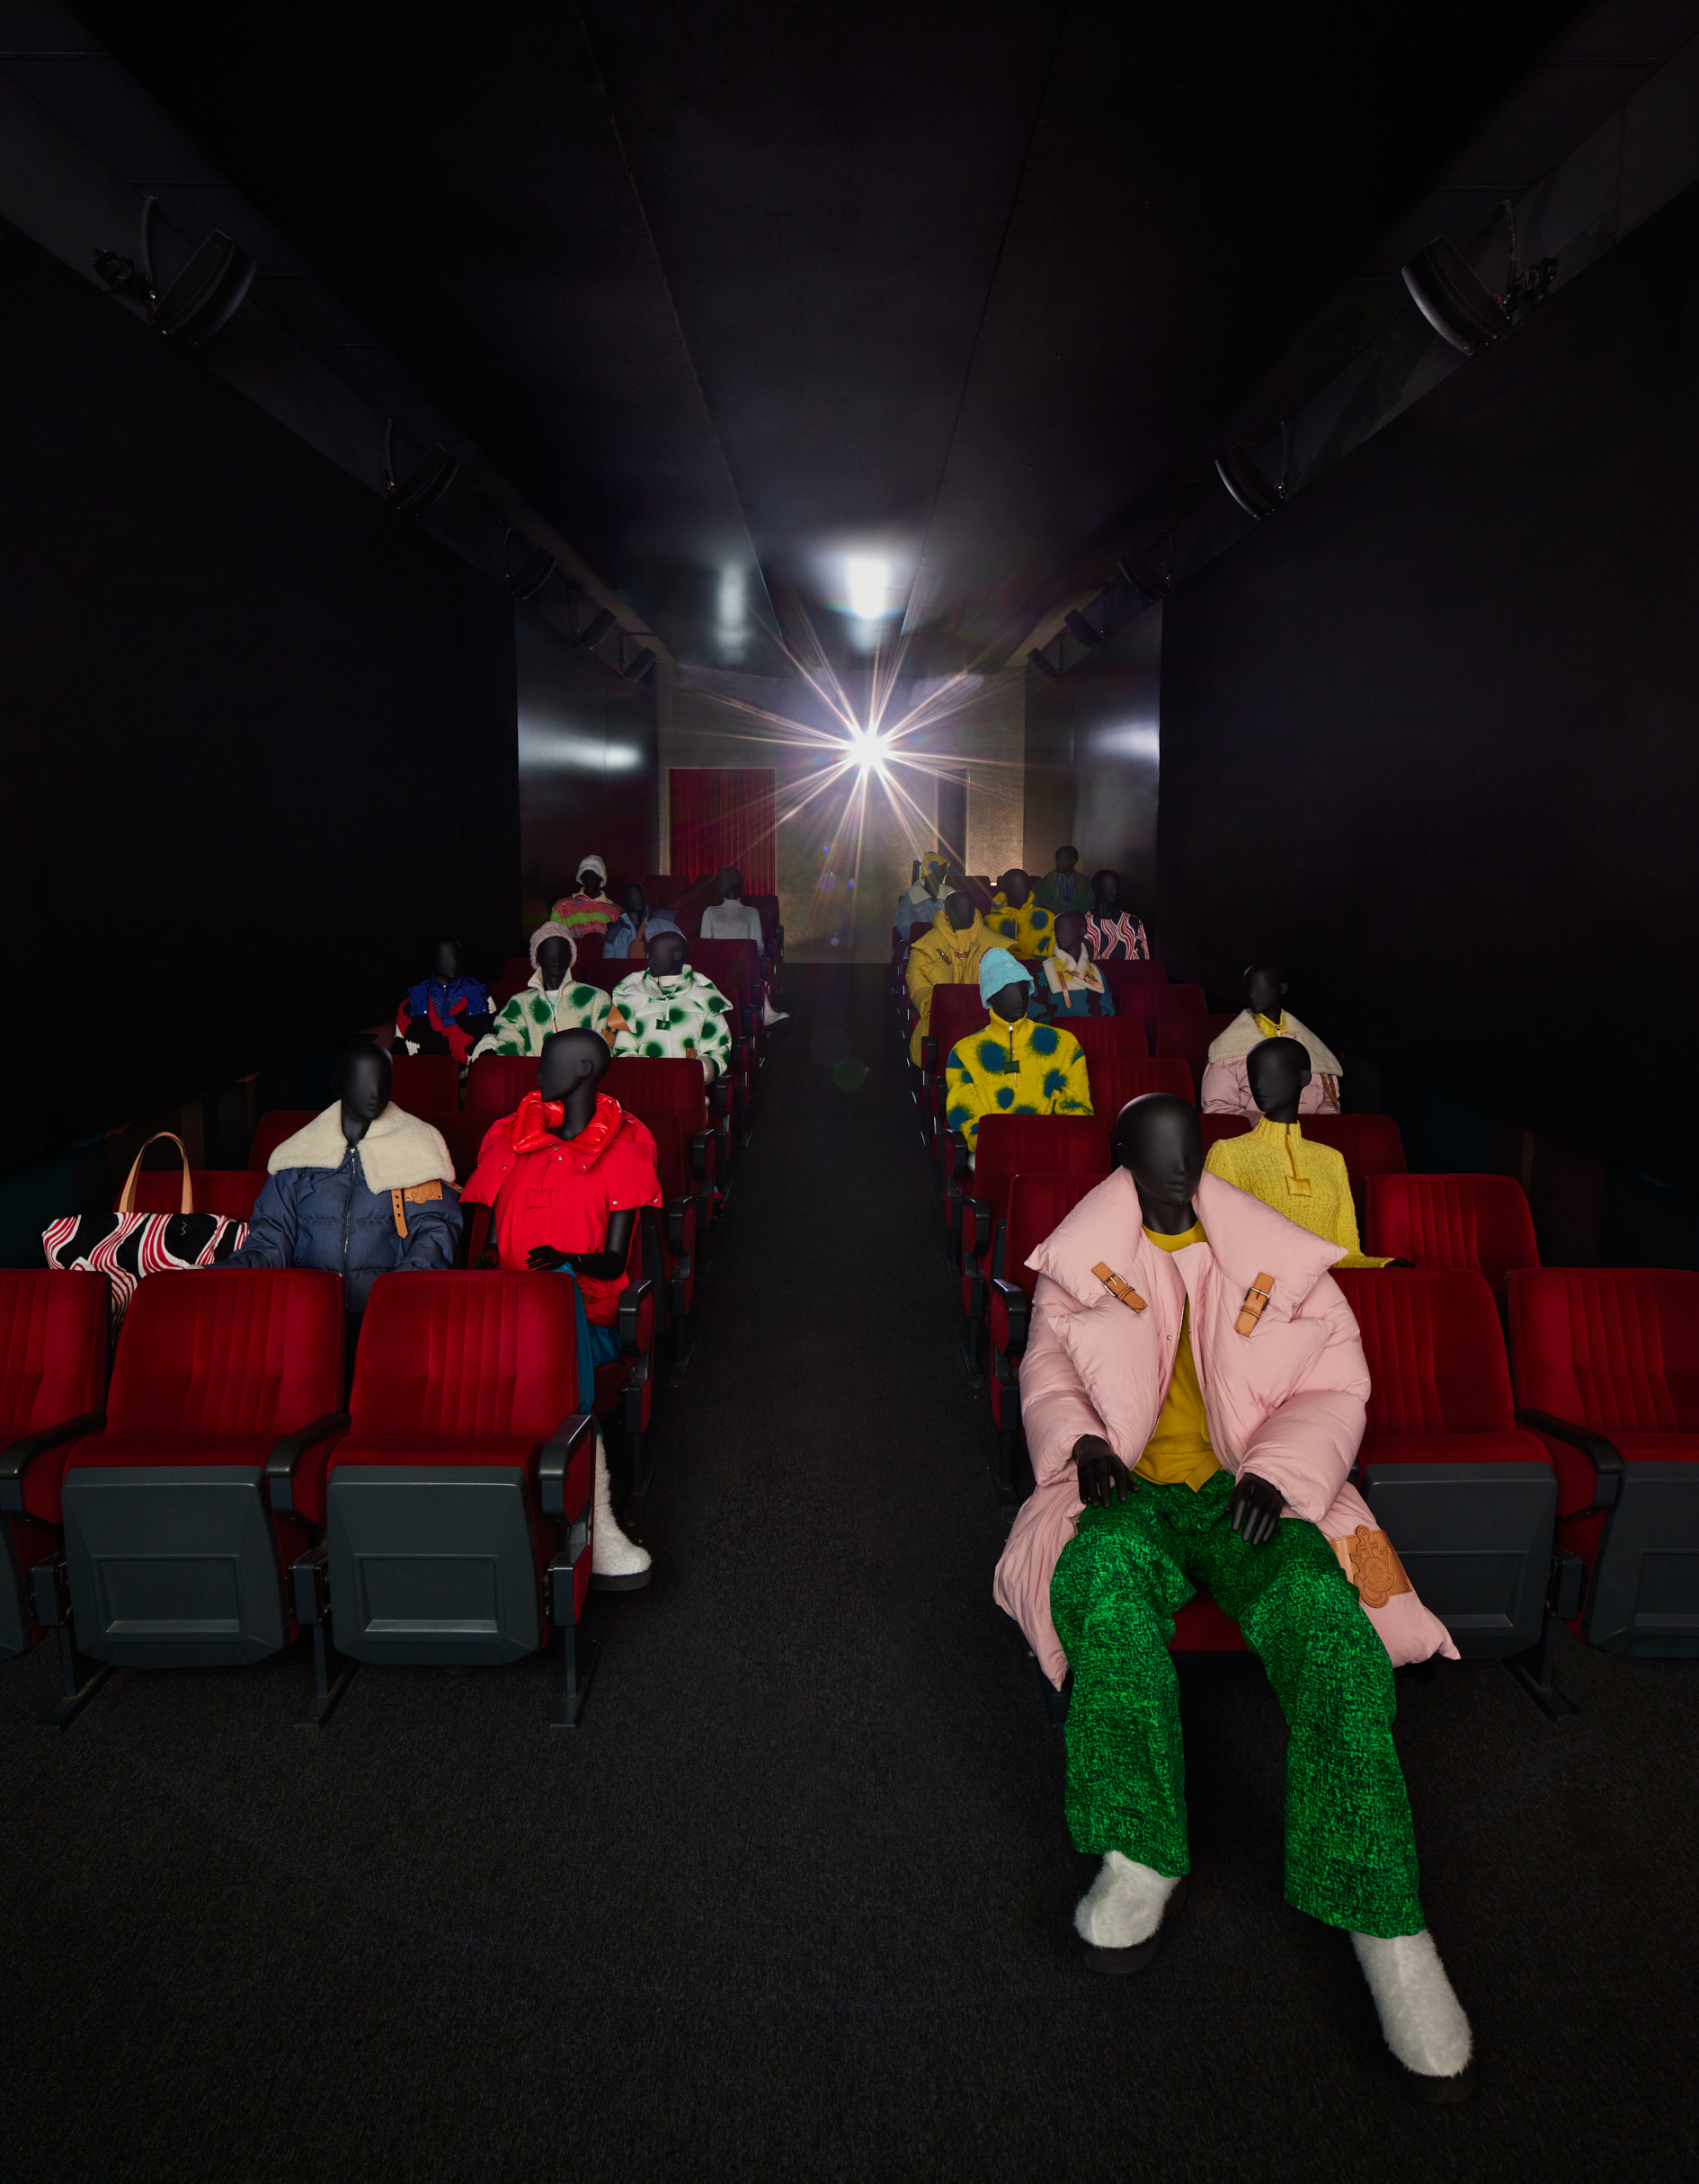 1_Moncler_JW_ANDERSON_installation_with_mannequines_04.jpg